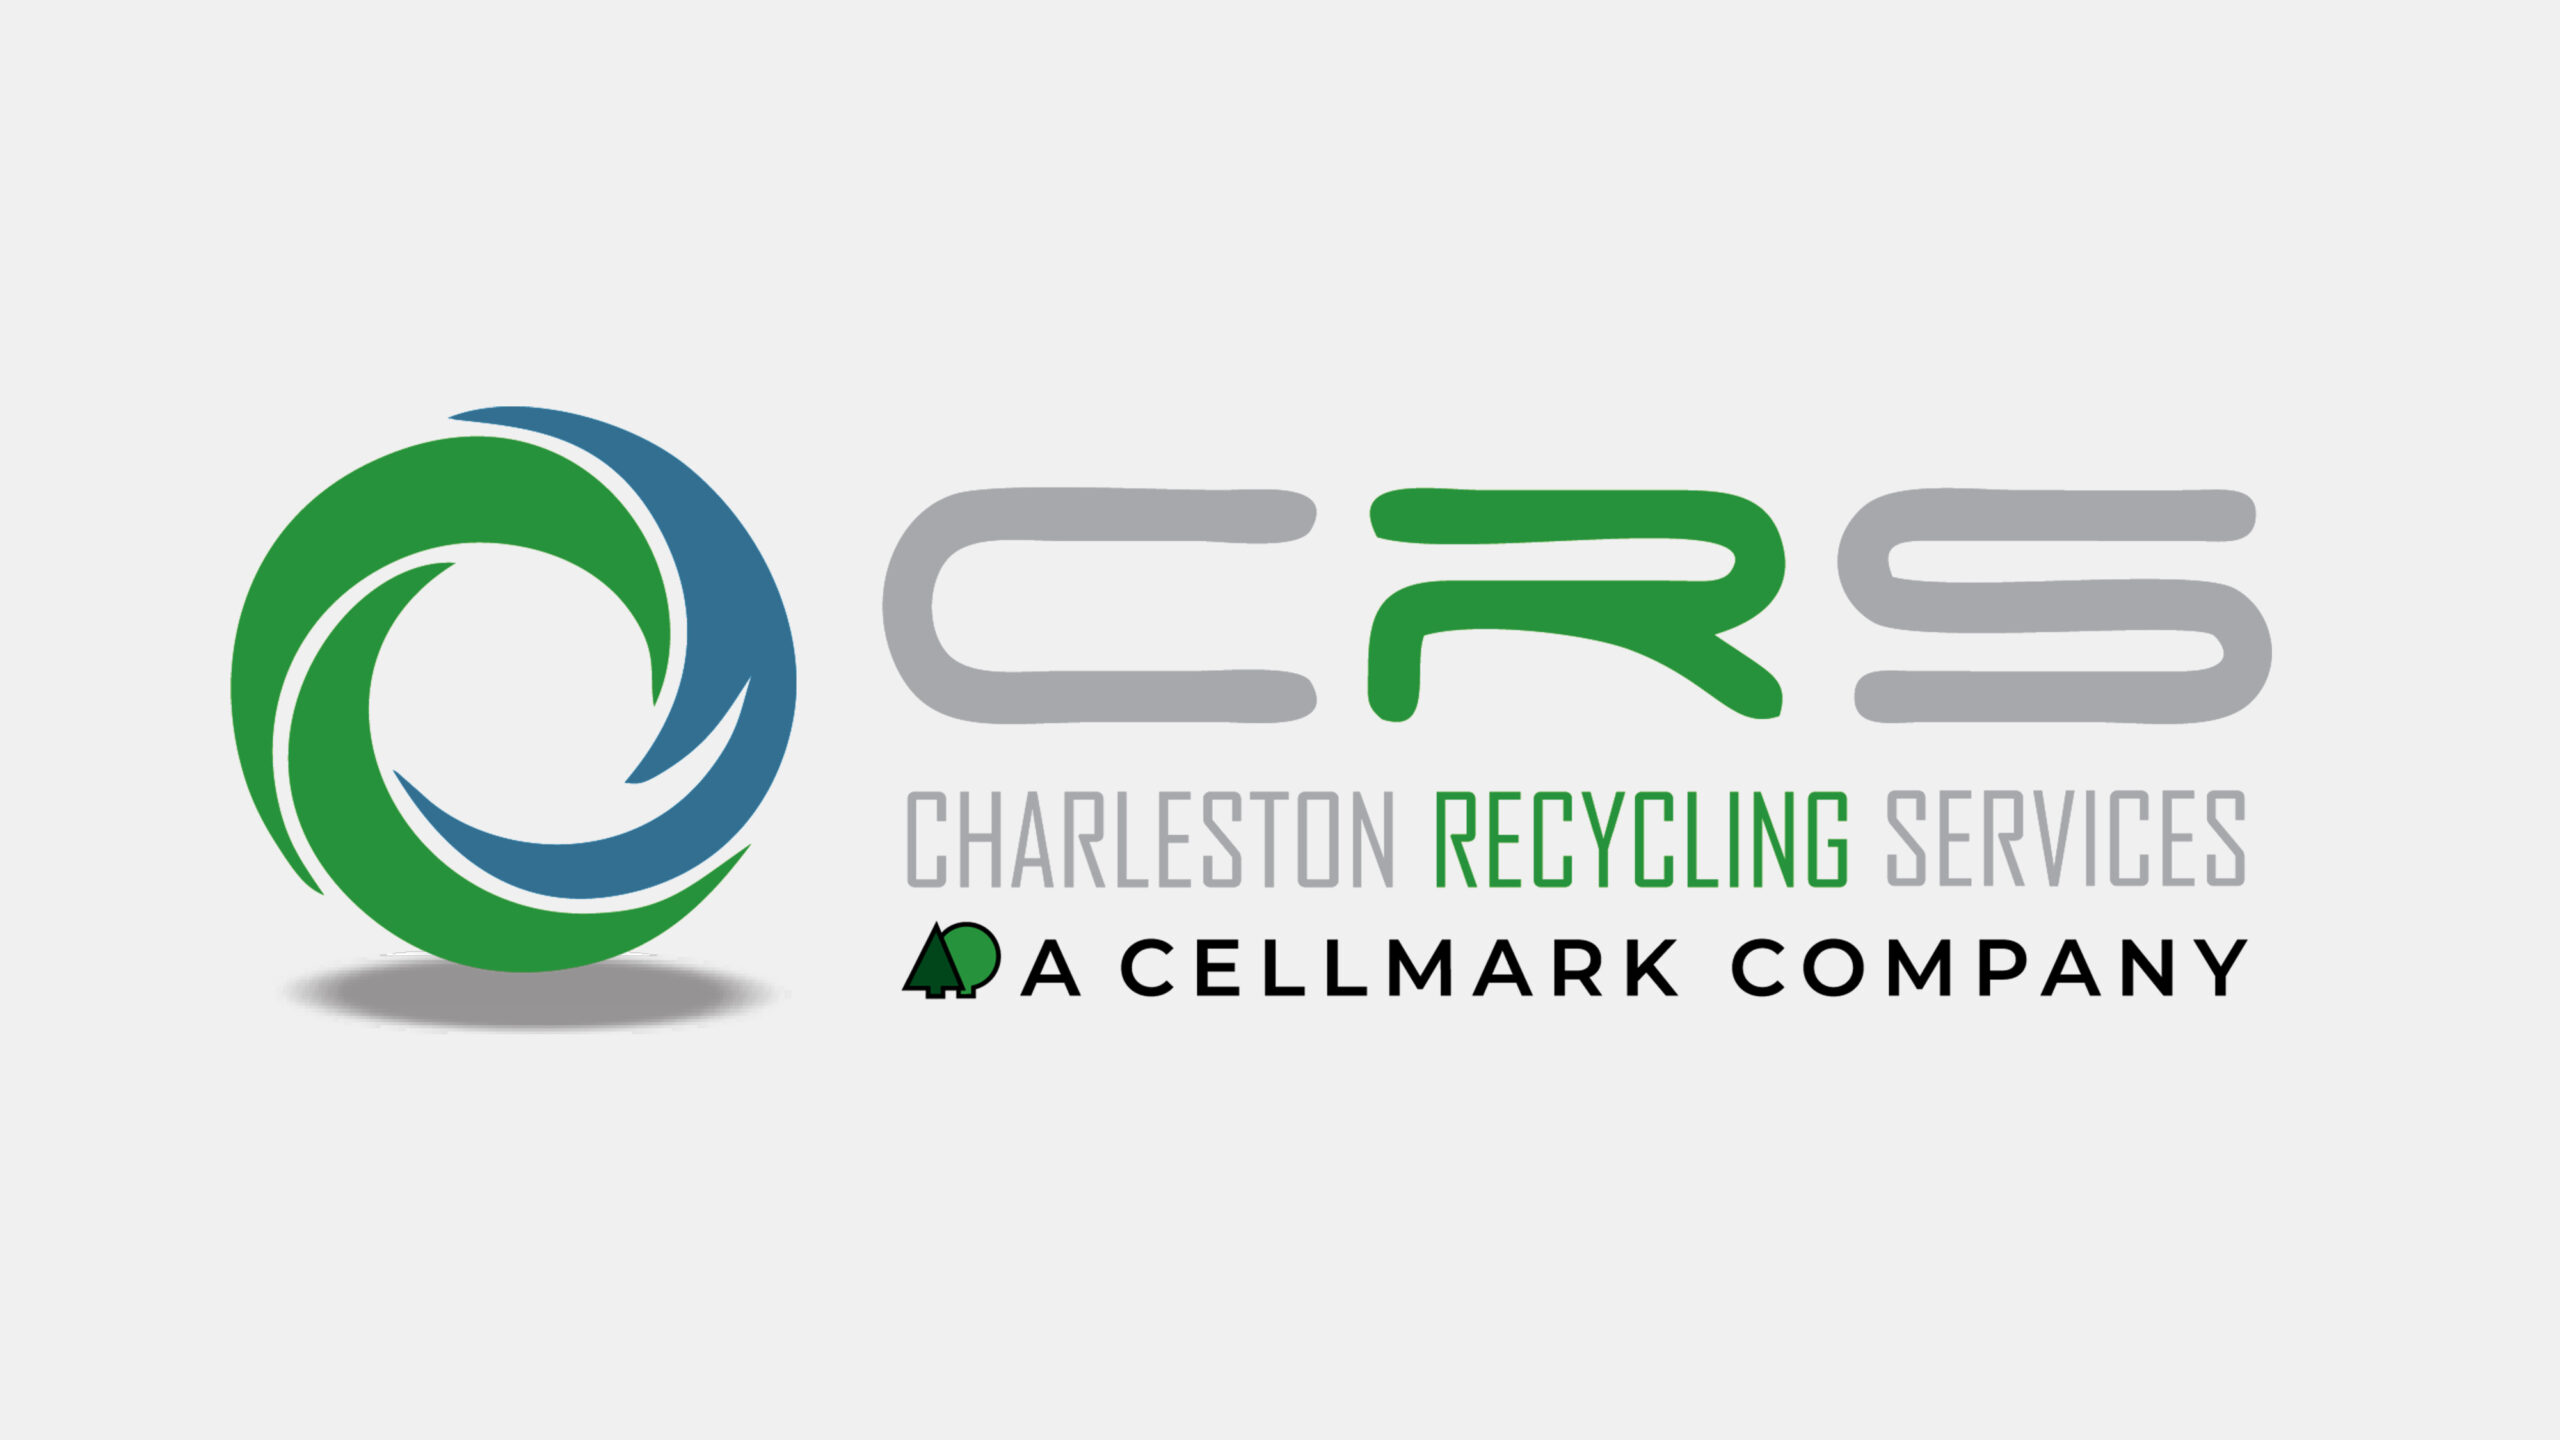 charleston recycling services logo on grey background